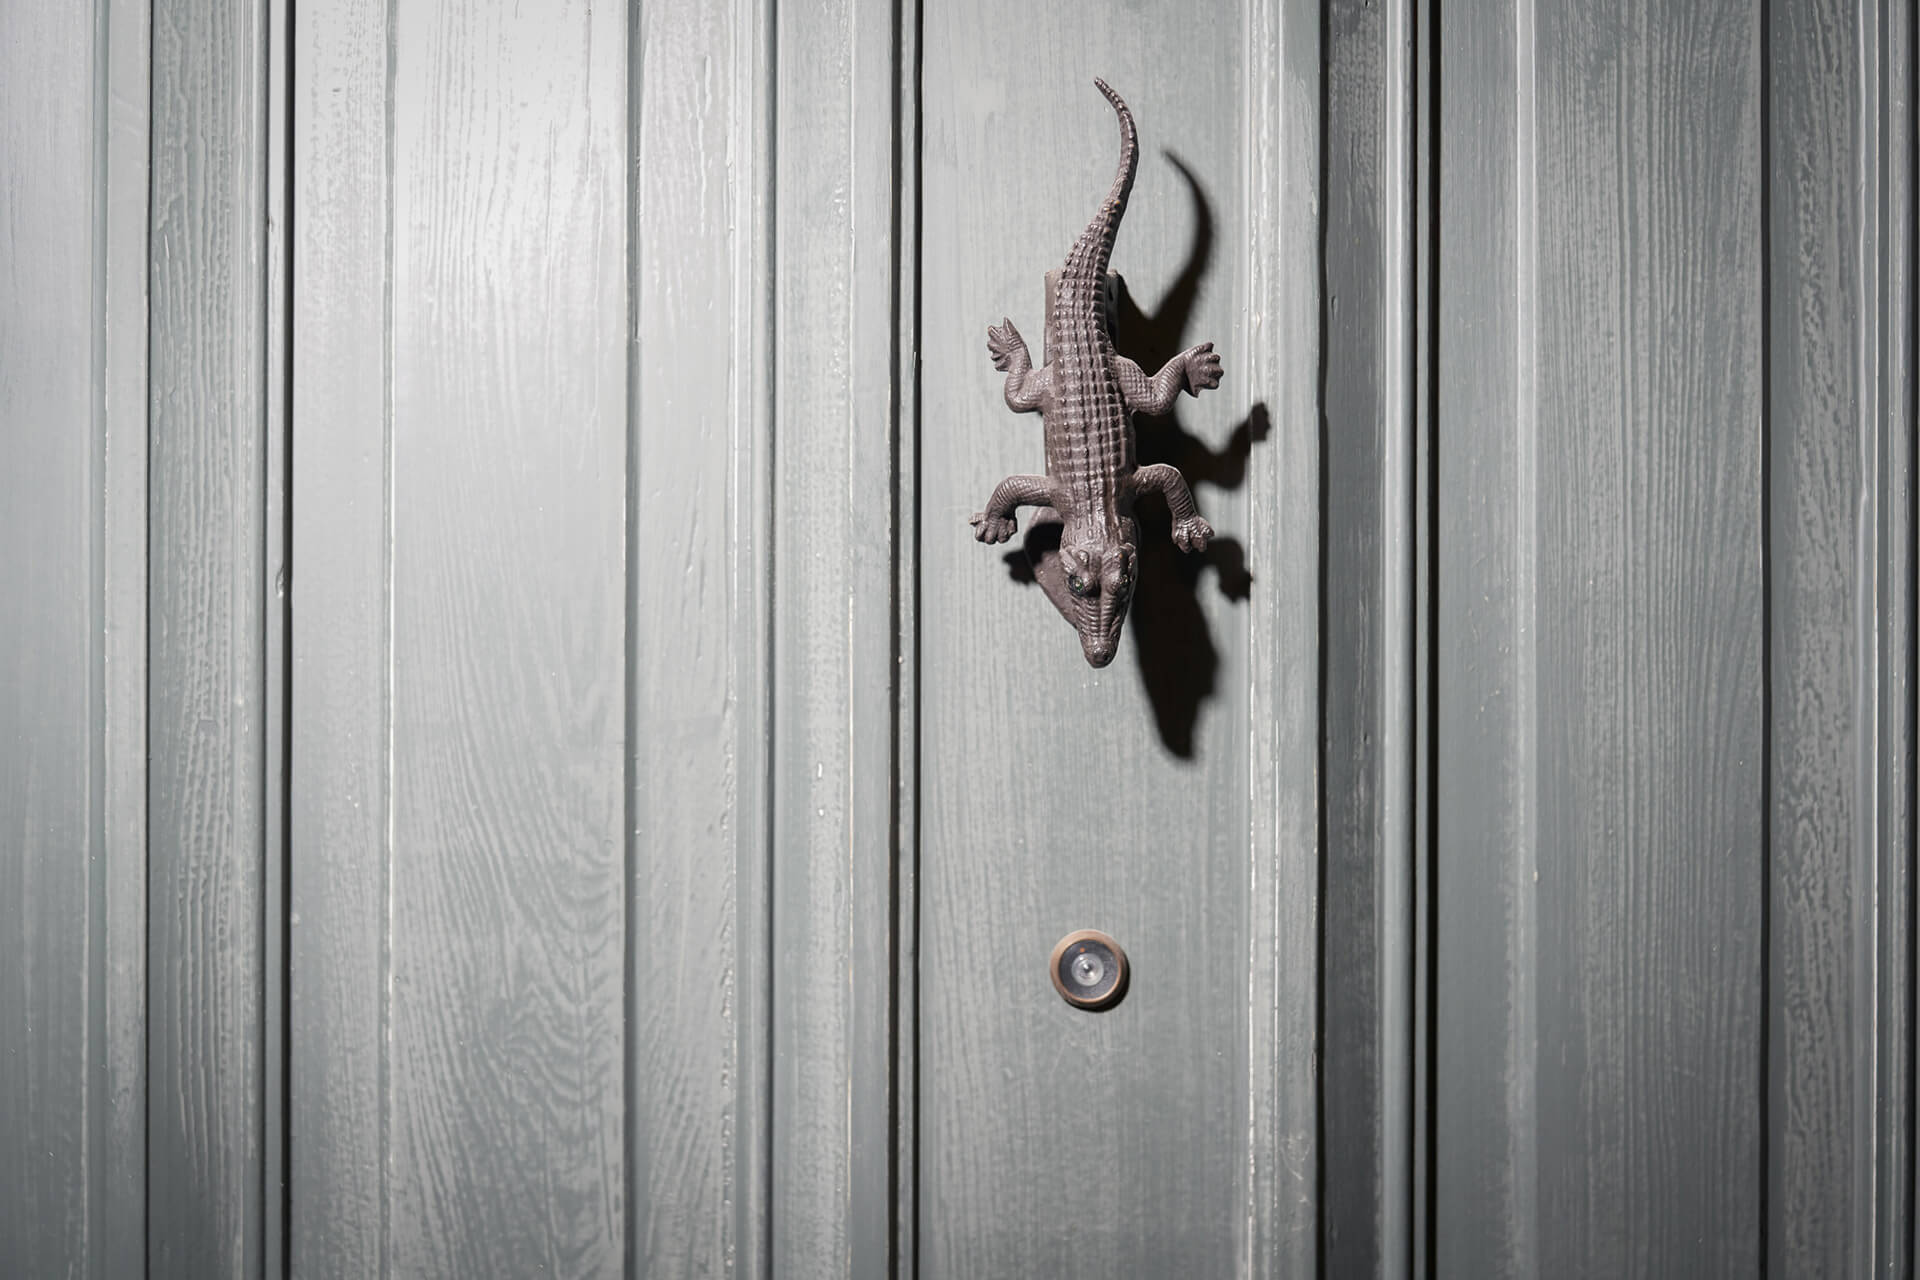 Iron lizards become door knockers | The Chloe designed by Sara Costello | STIRworld